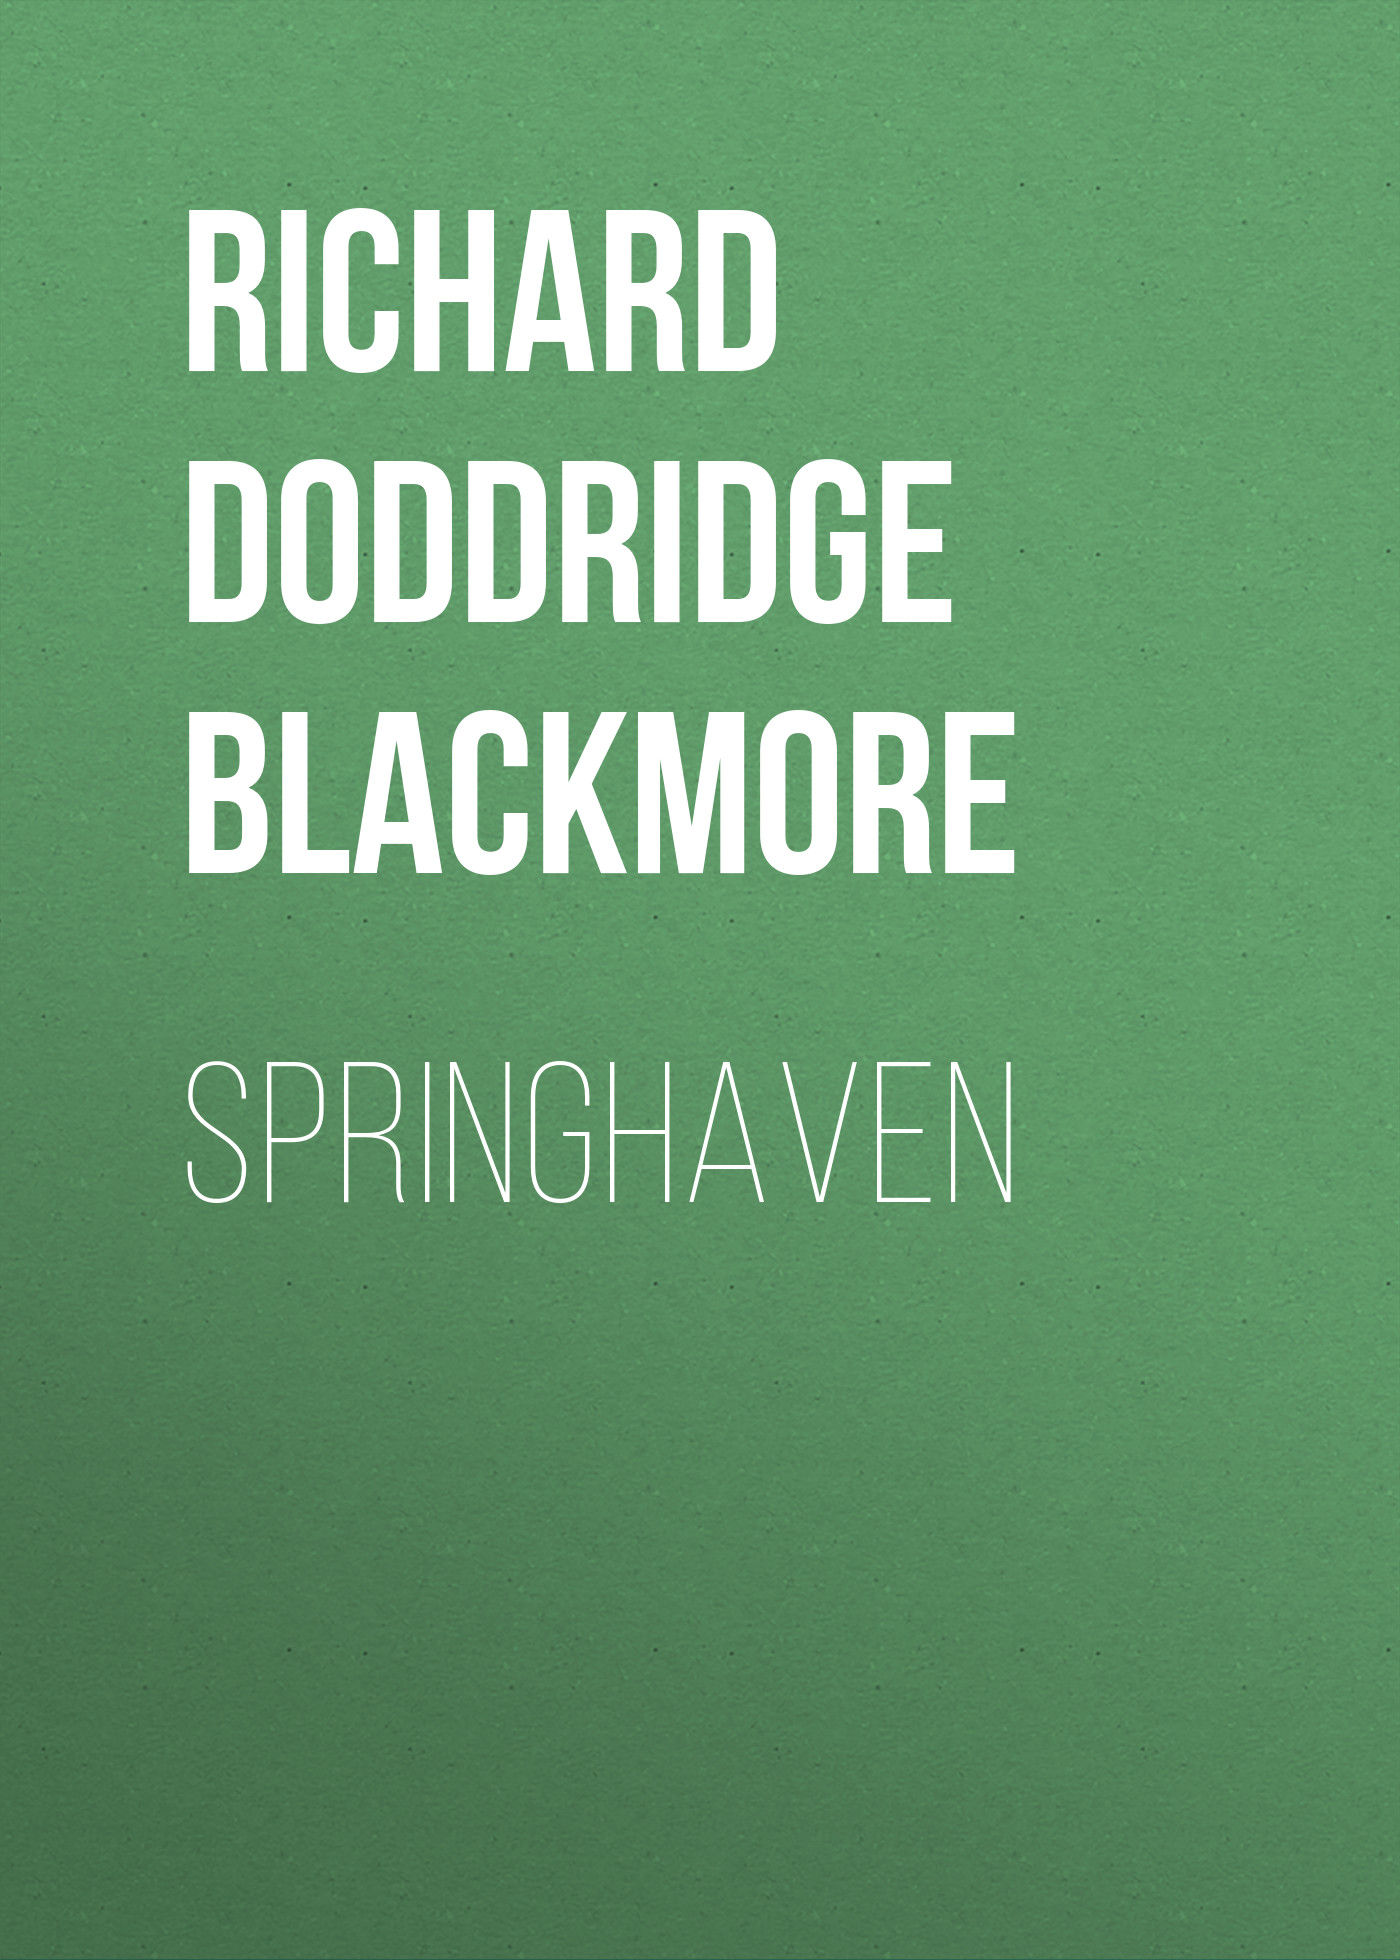 Richard Doddridge Blackmore Springhaven цена 2017